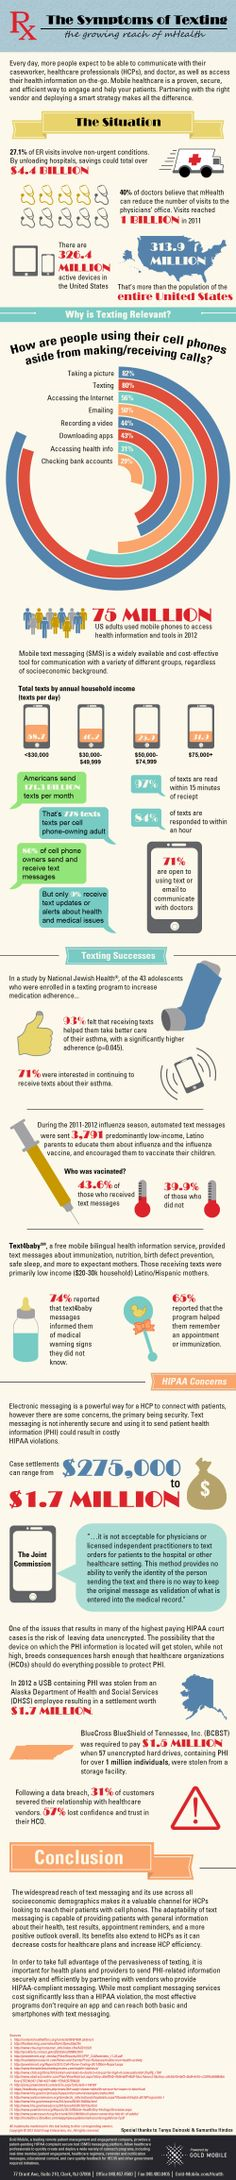 The Symptoms of Texting - the growing reach of #mHealth